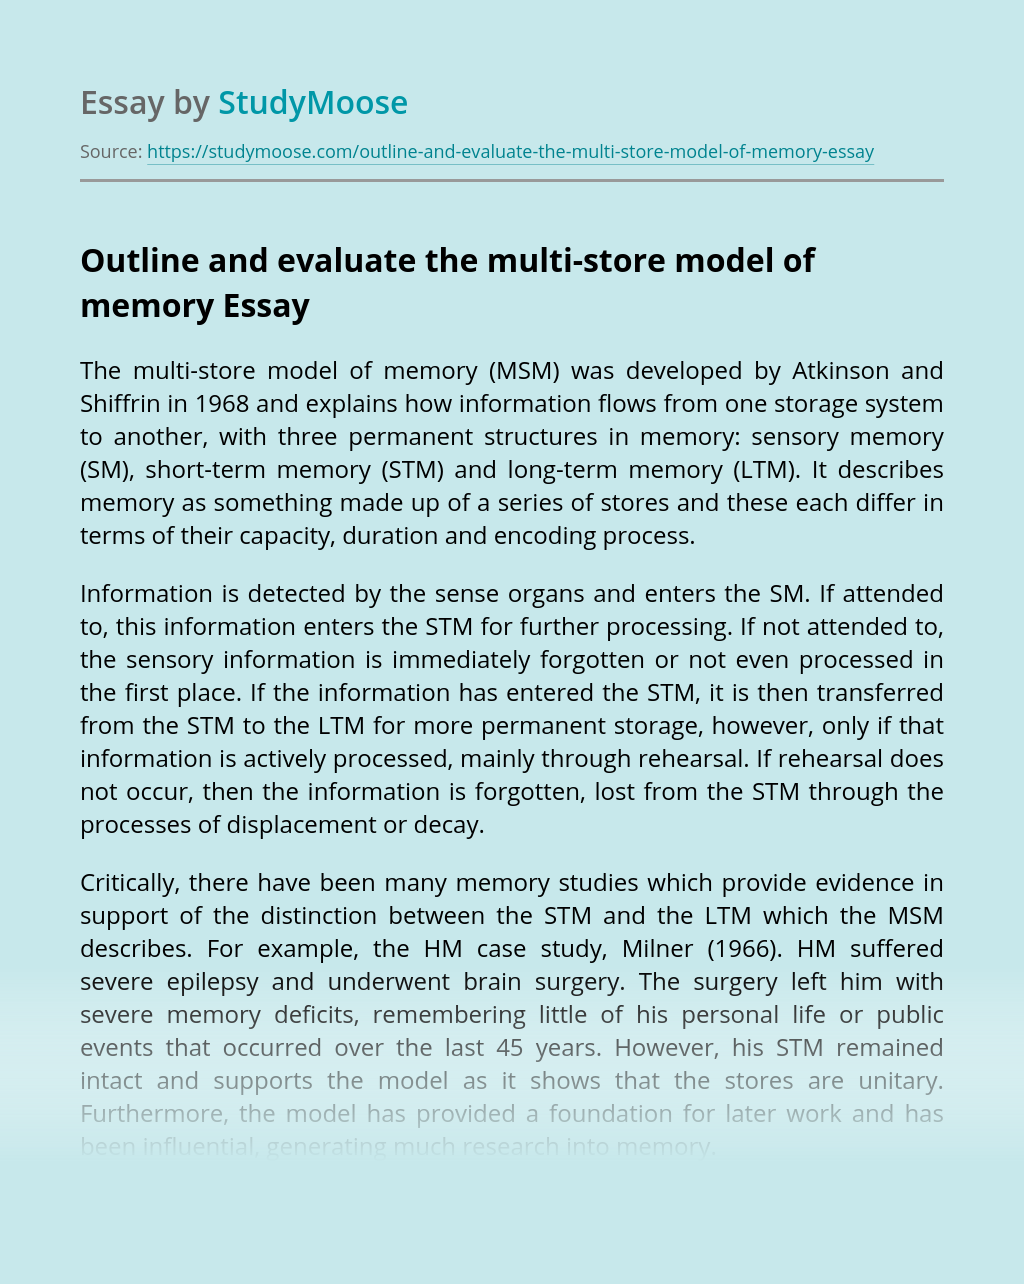 Outline and evaluate the multi-store model of memory